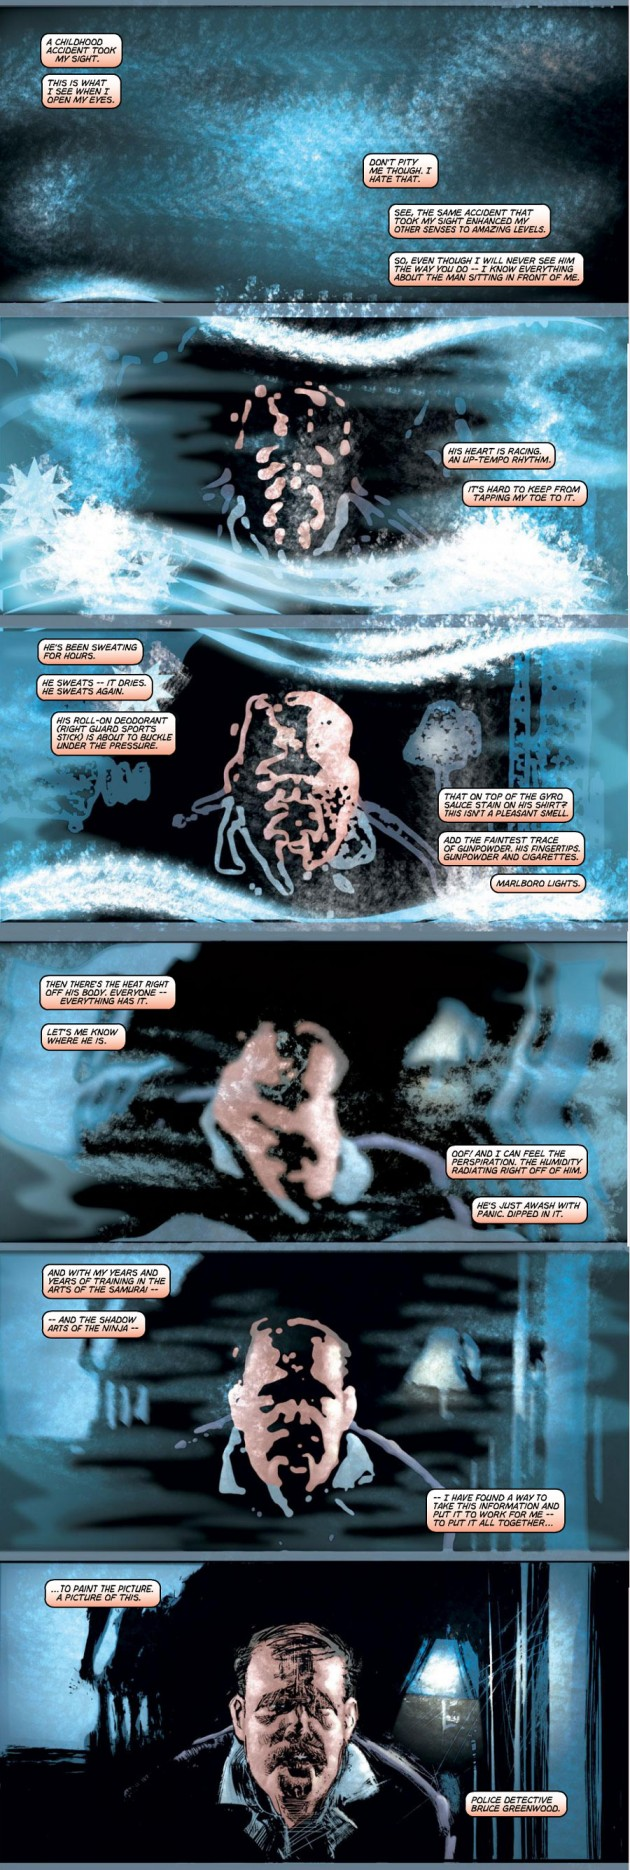 Scene from Ultimate Marvel Team-Up #7 by Brian Bendis and Bill Sienkiewicz